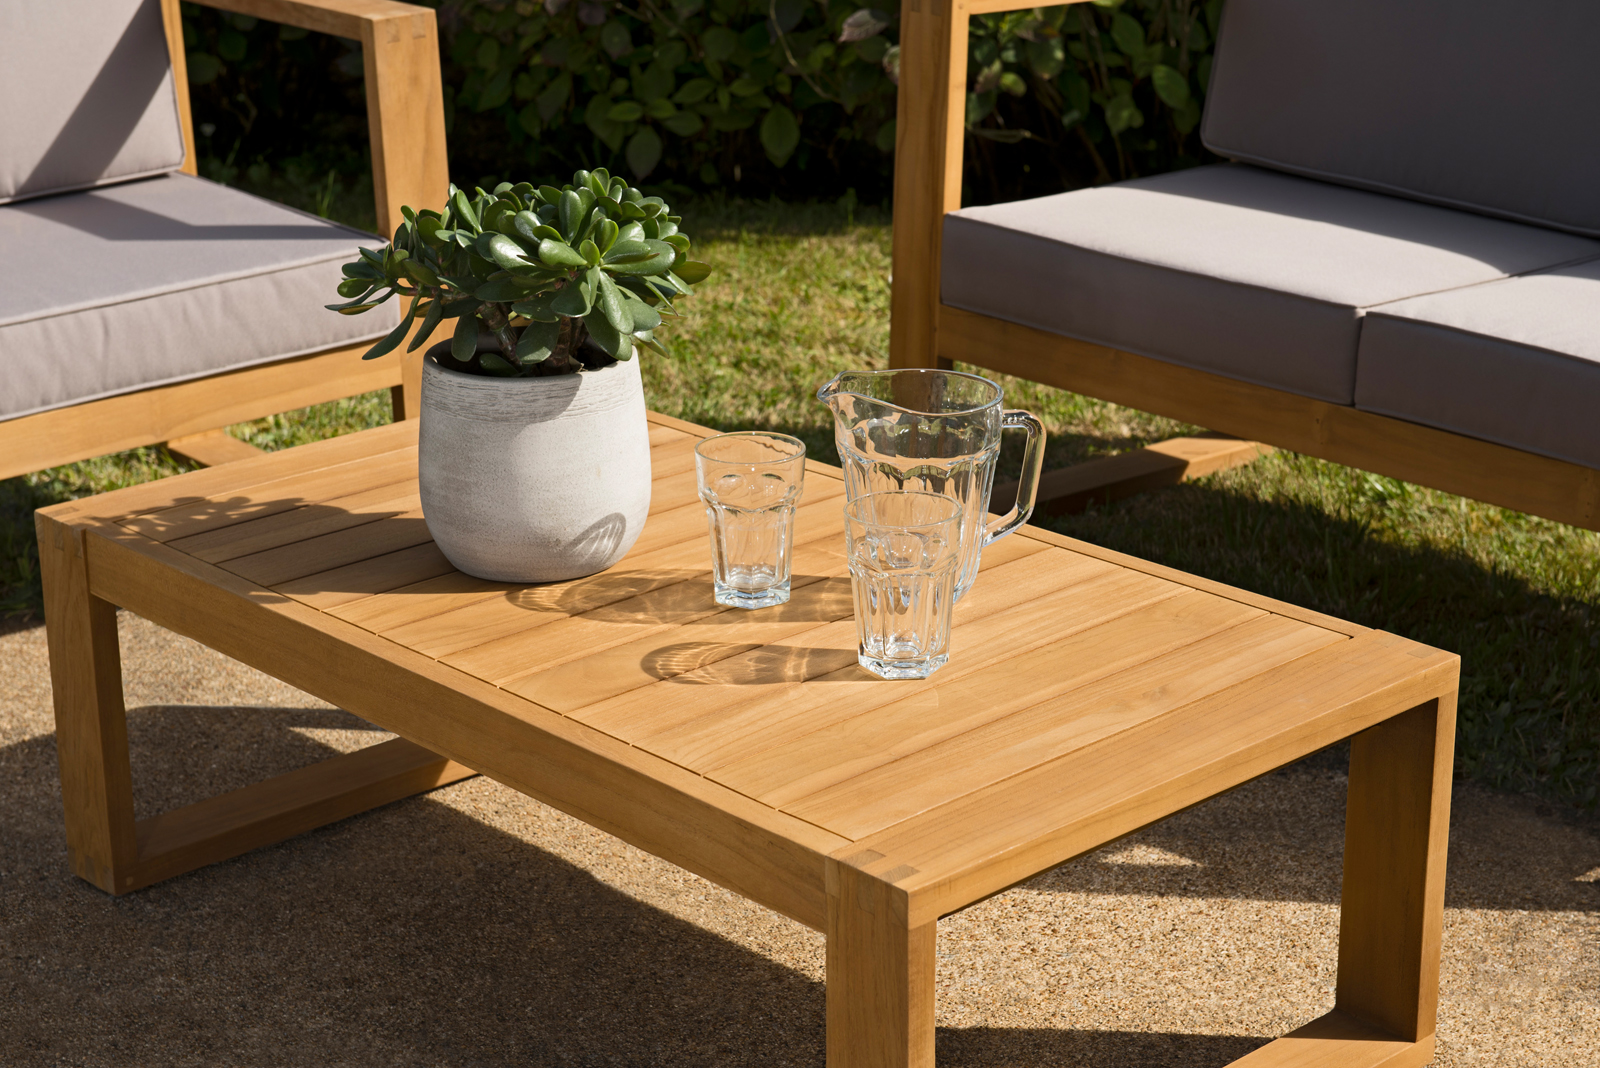 Salon de jardin en teck SUMMER (1 canapé 3 places, 2 fauteuils, 1 table  basse)